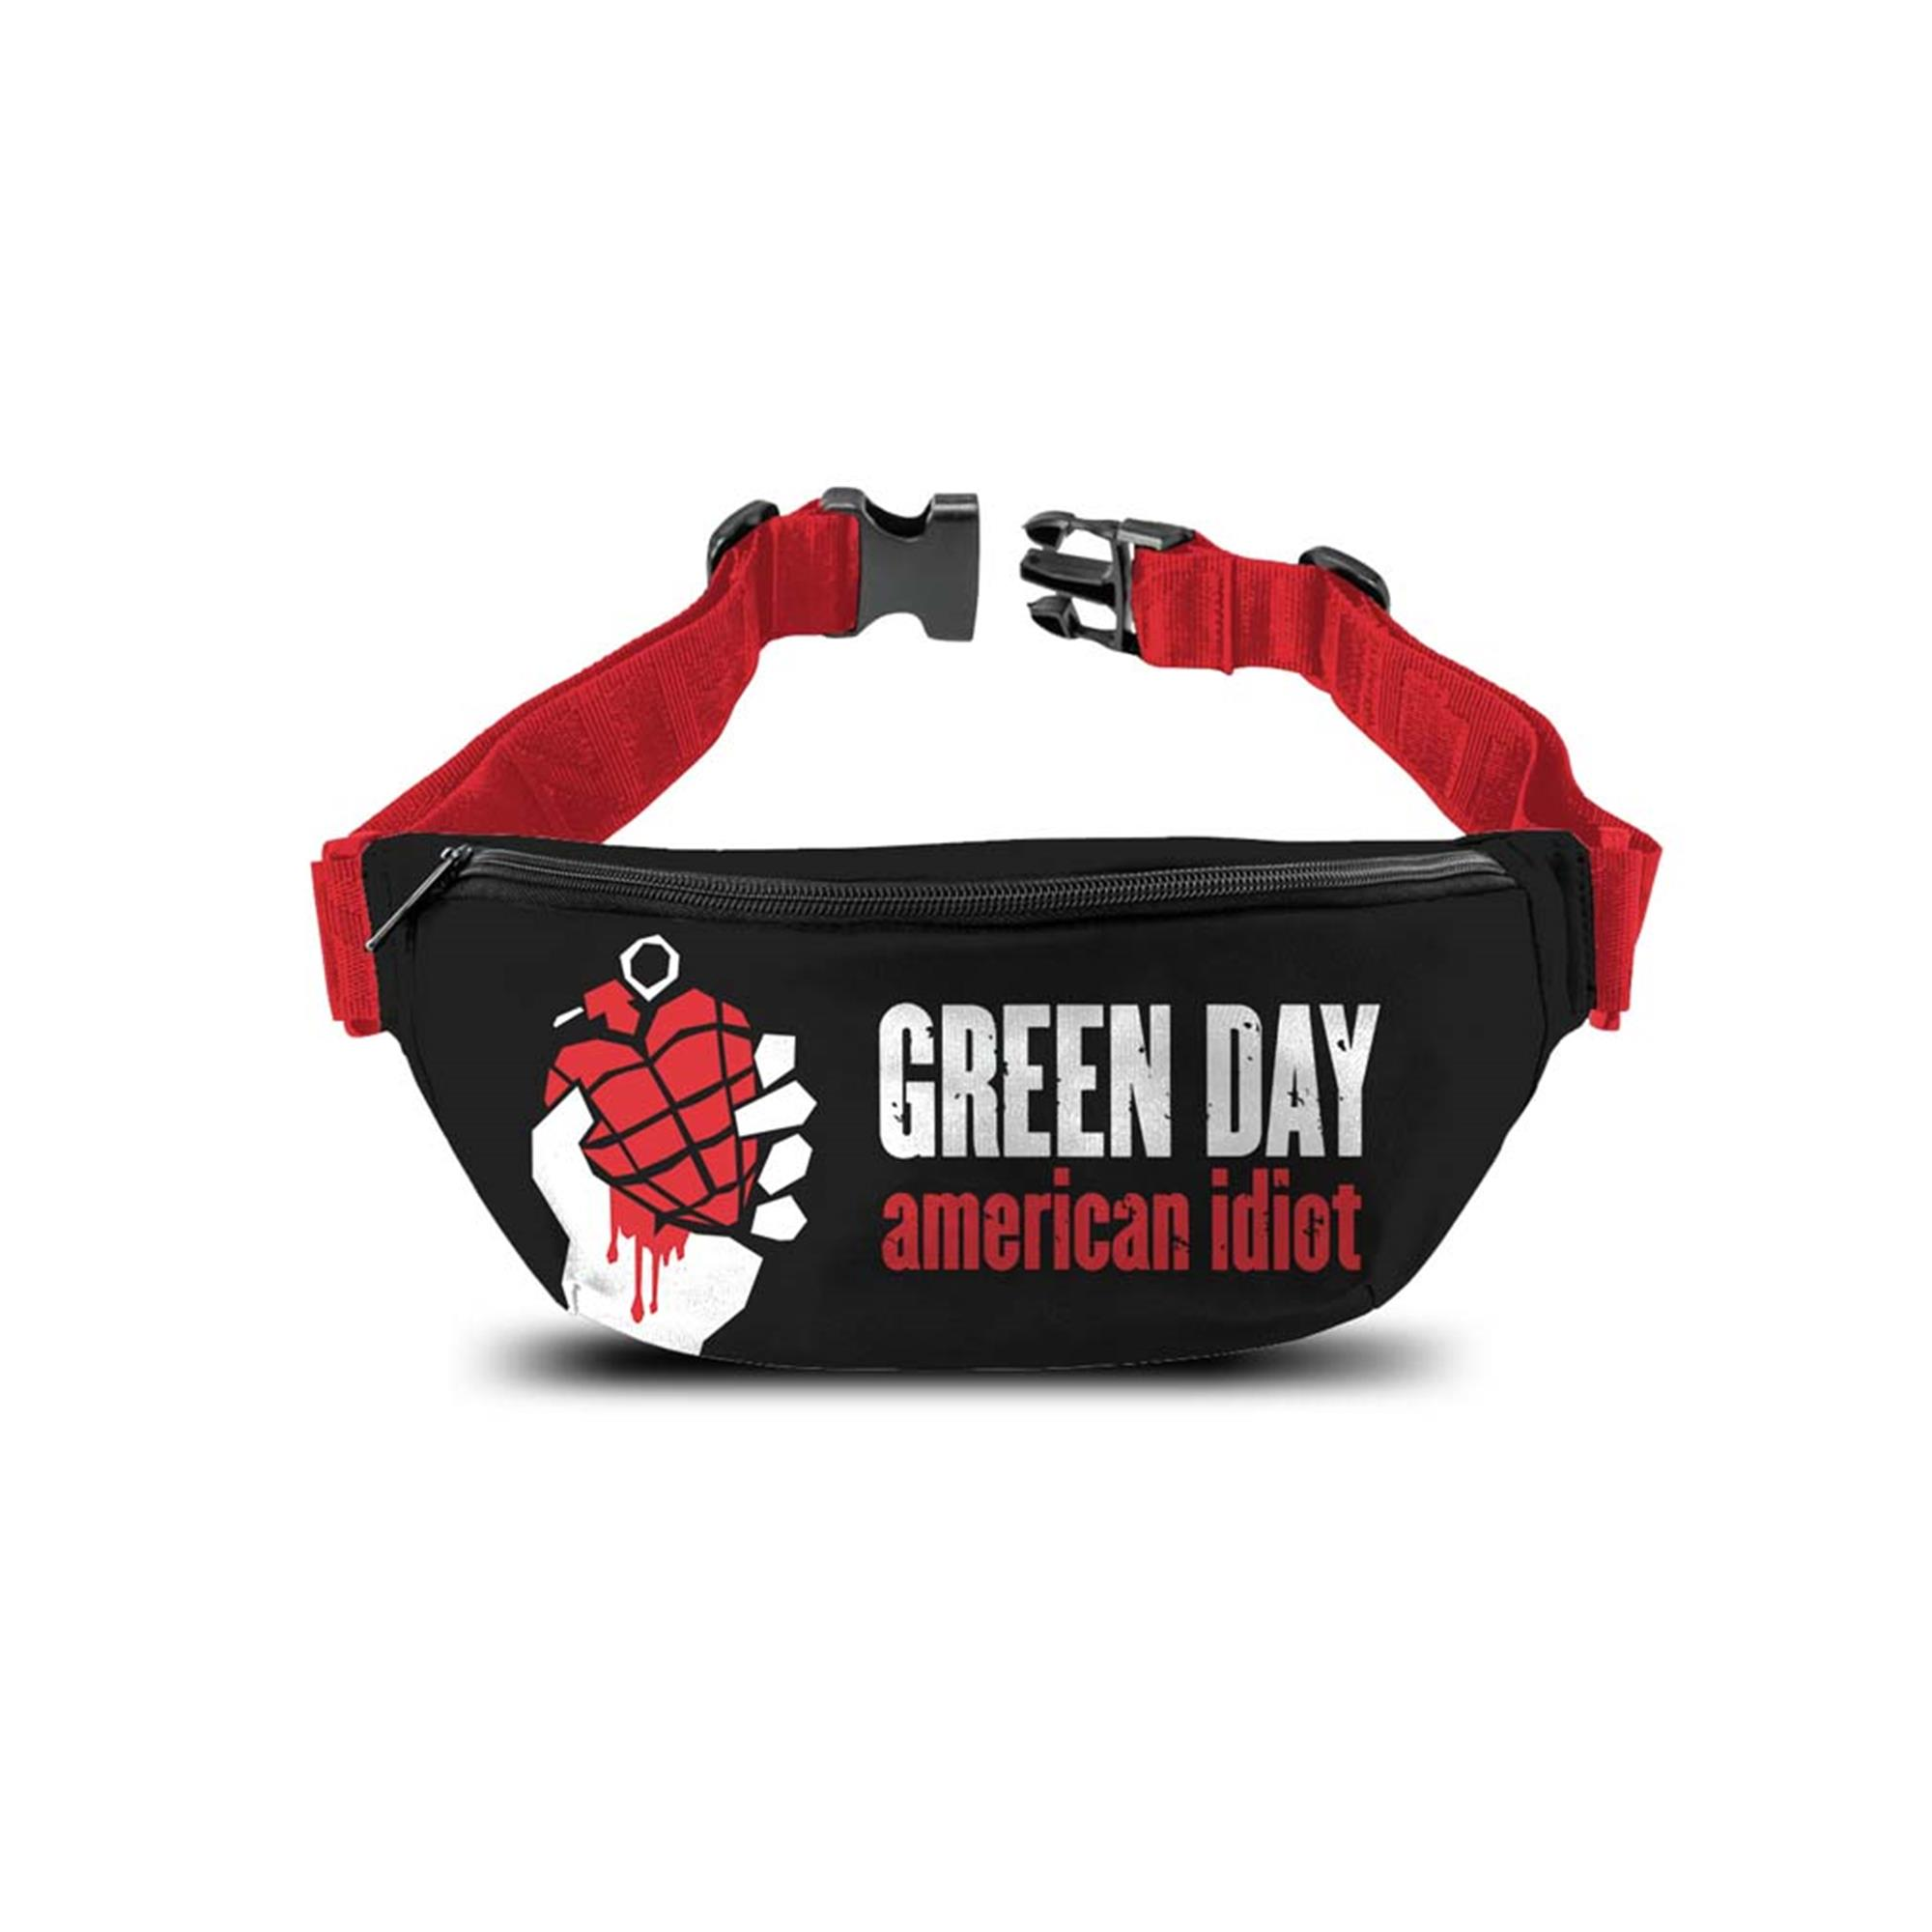 Green Day American Idiot Fanny Pack